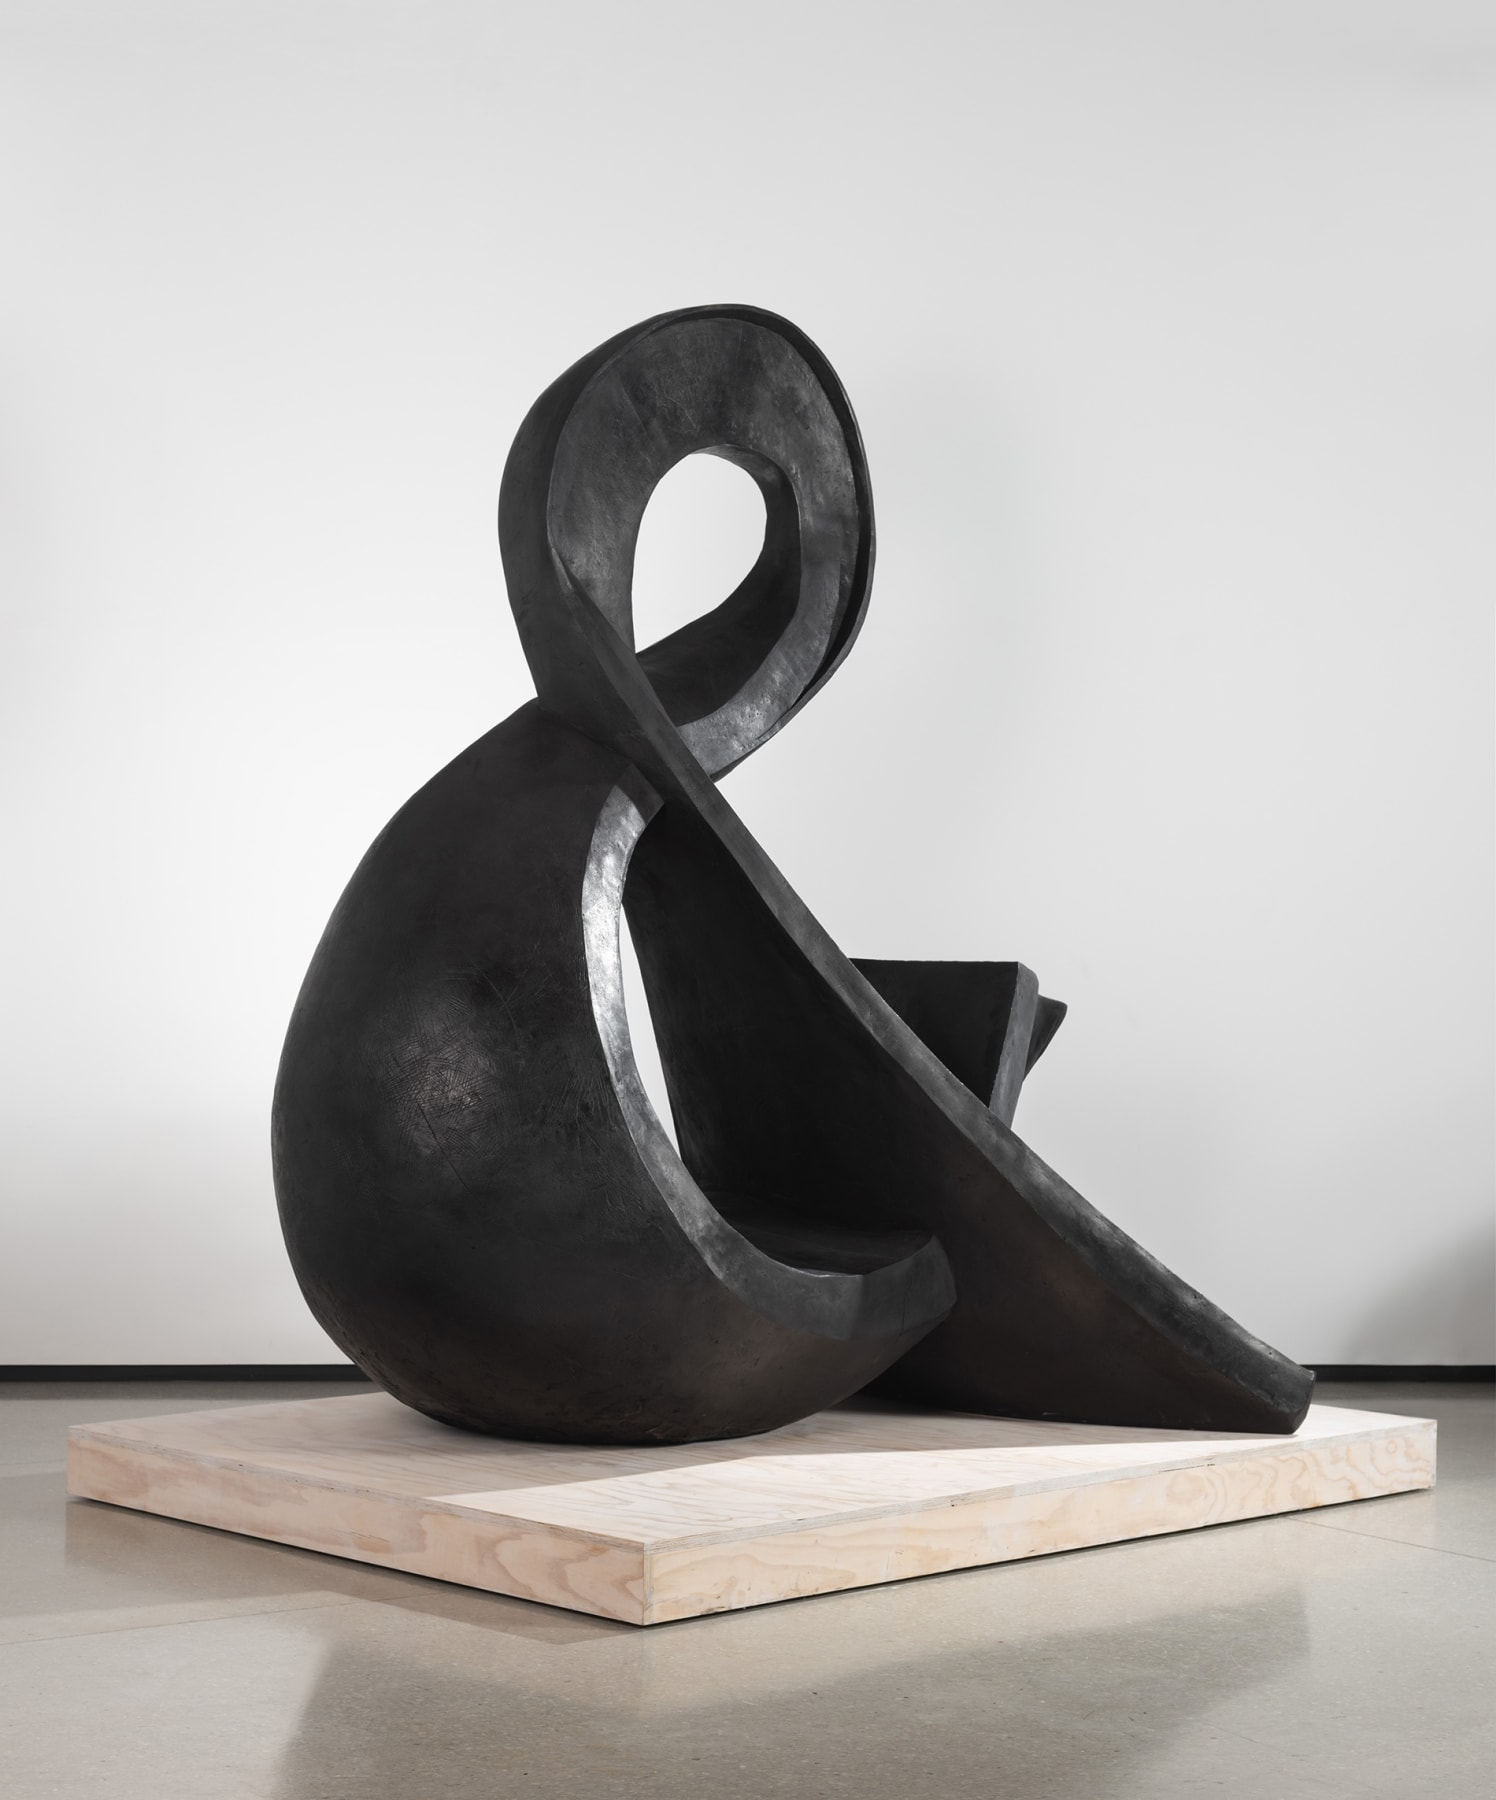 a black ampersand sculpture made of brass by William Kentridge